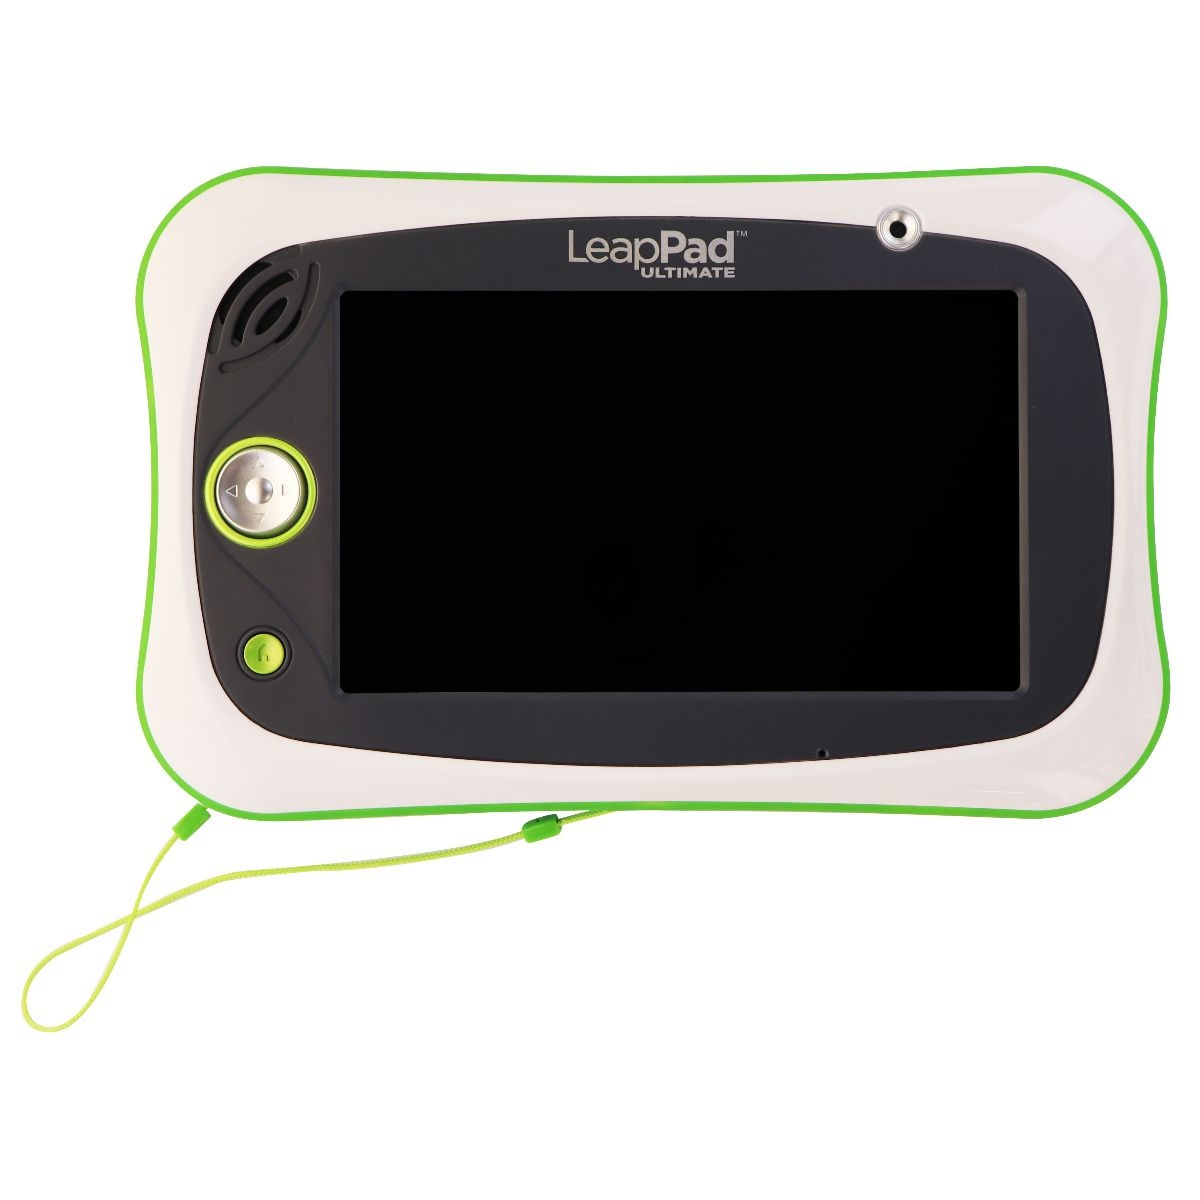 LeapFrog LeapPad Ultimate Edition Kids 7-inch Gaming Tablet White Green (Refurbished) by LeapFrog